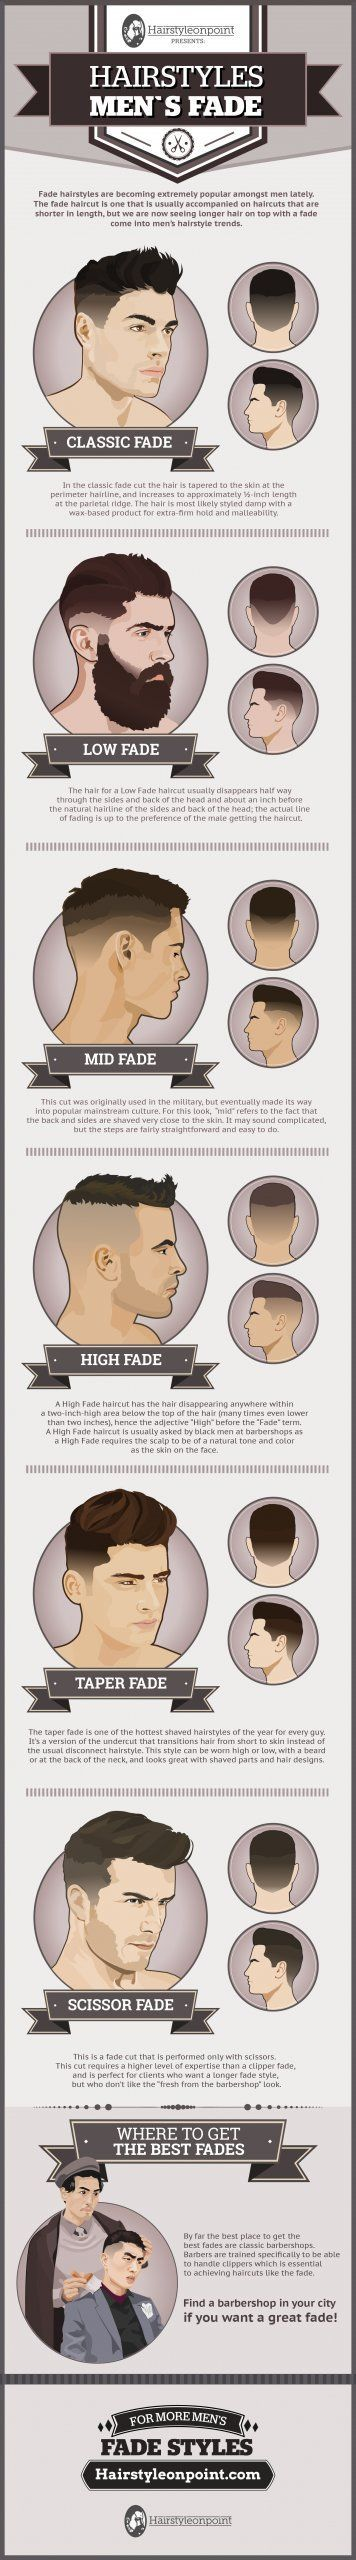 Learn how to ask for the right fade at your barbershop.